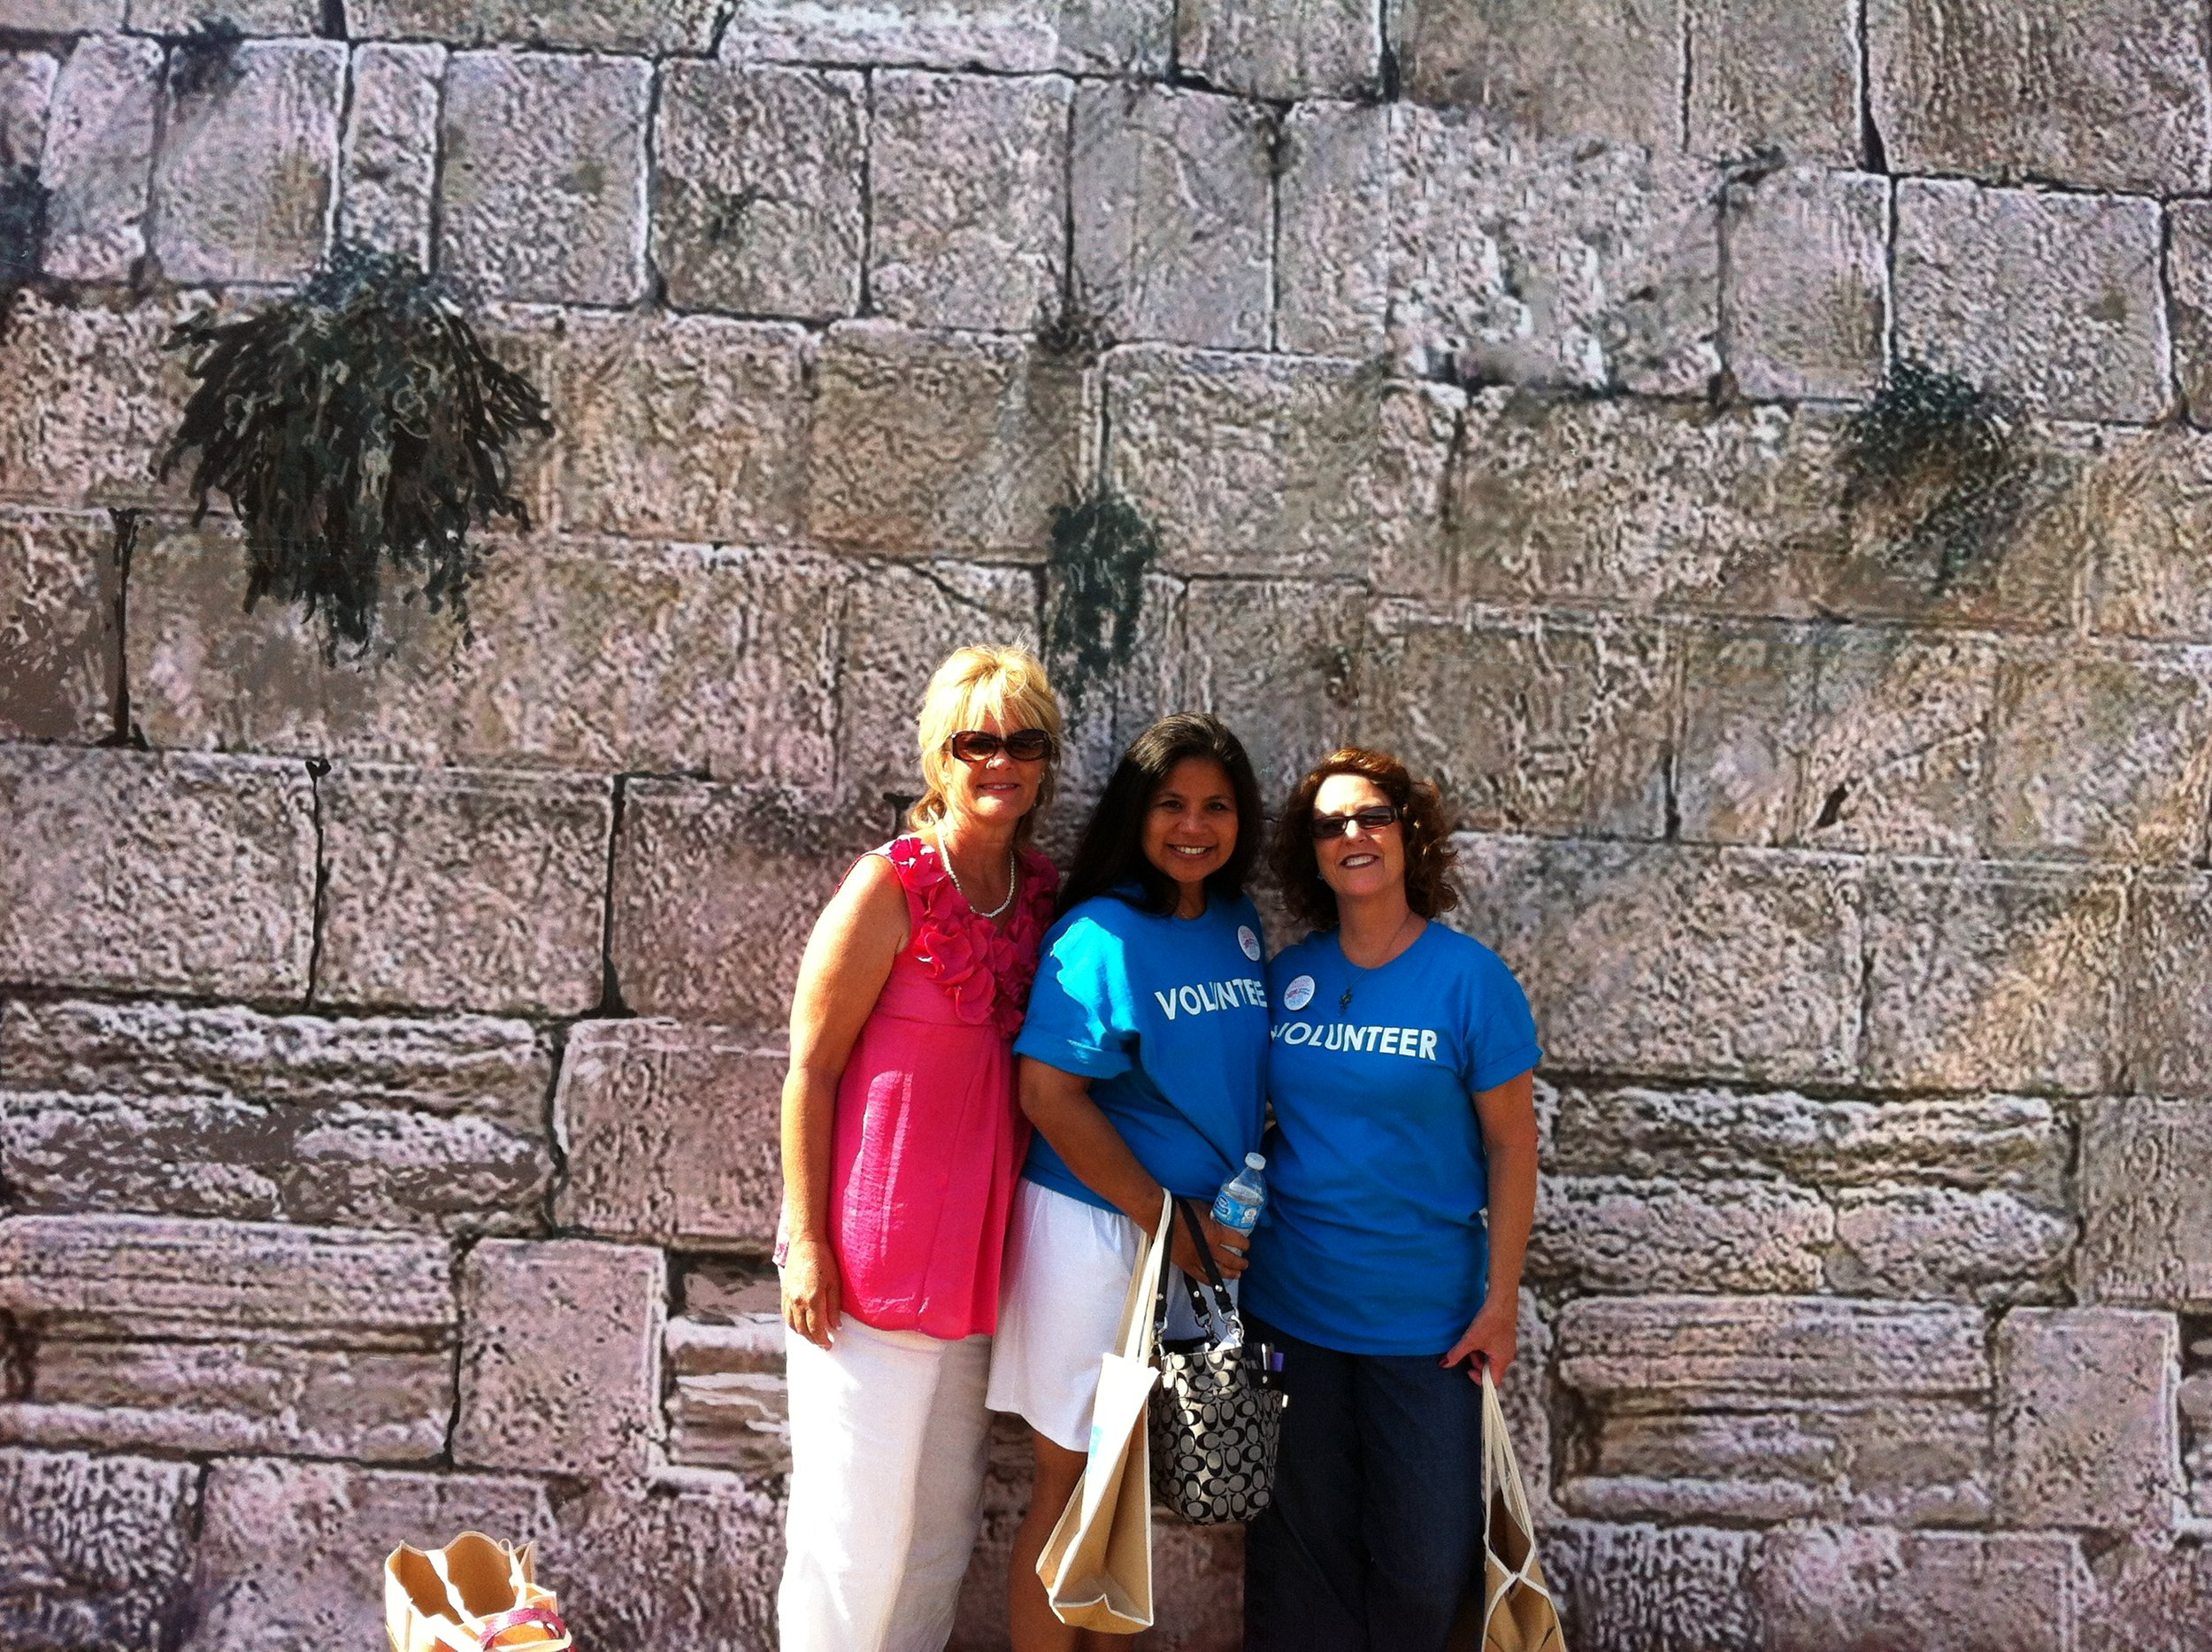 Volunteering at the Israel Expo 2012